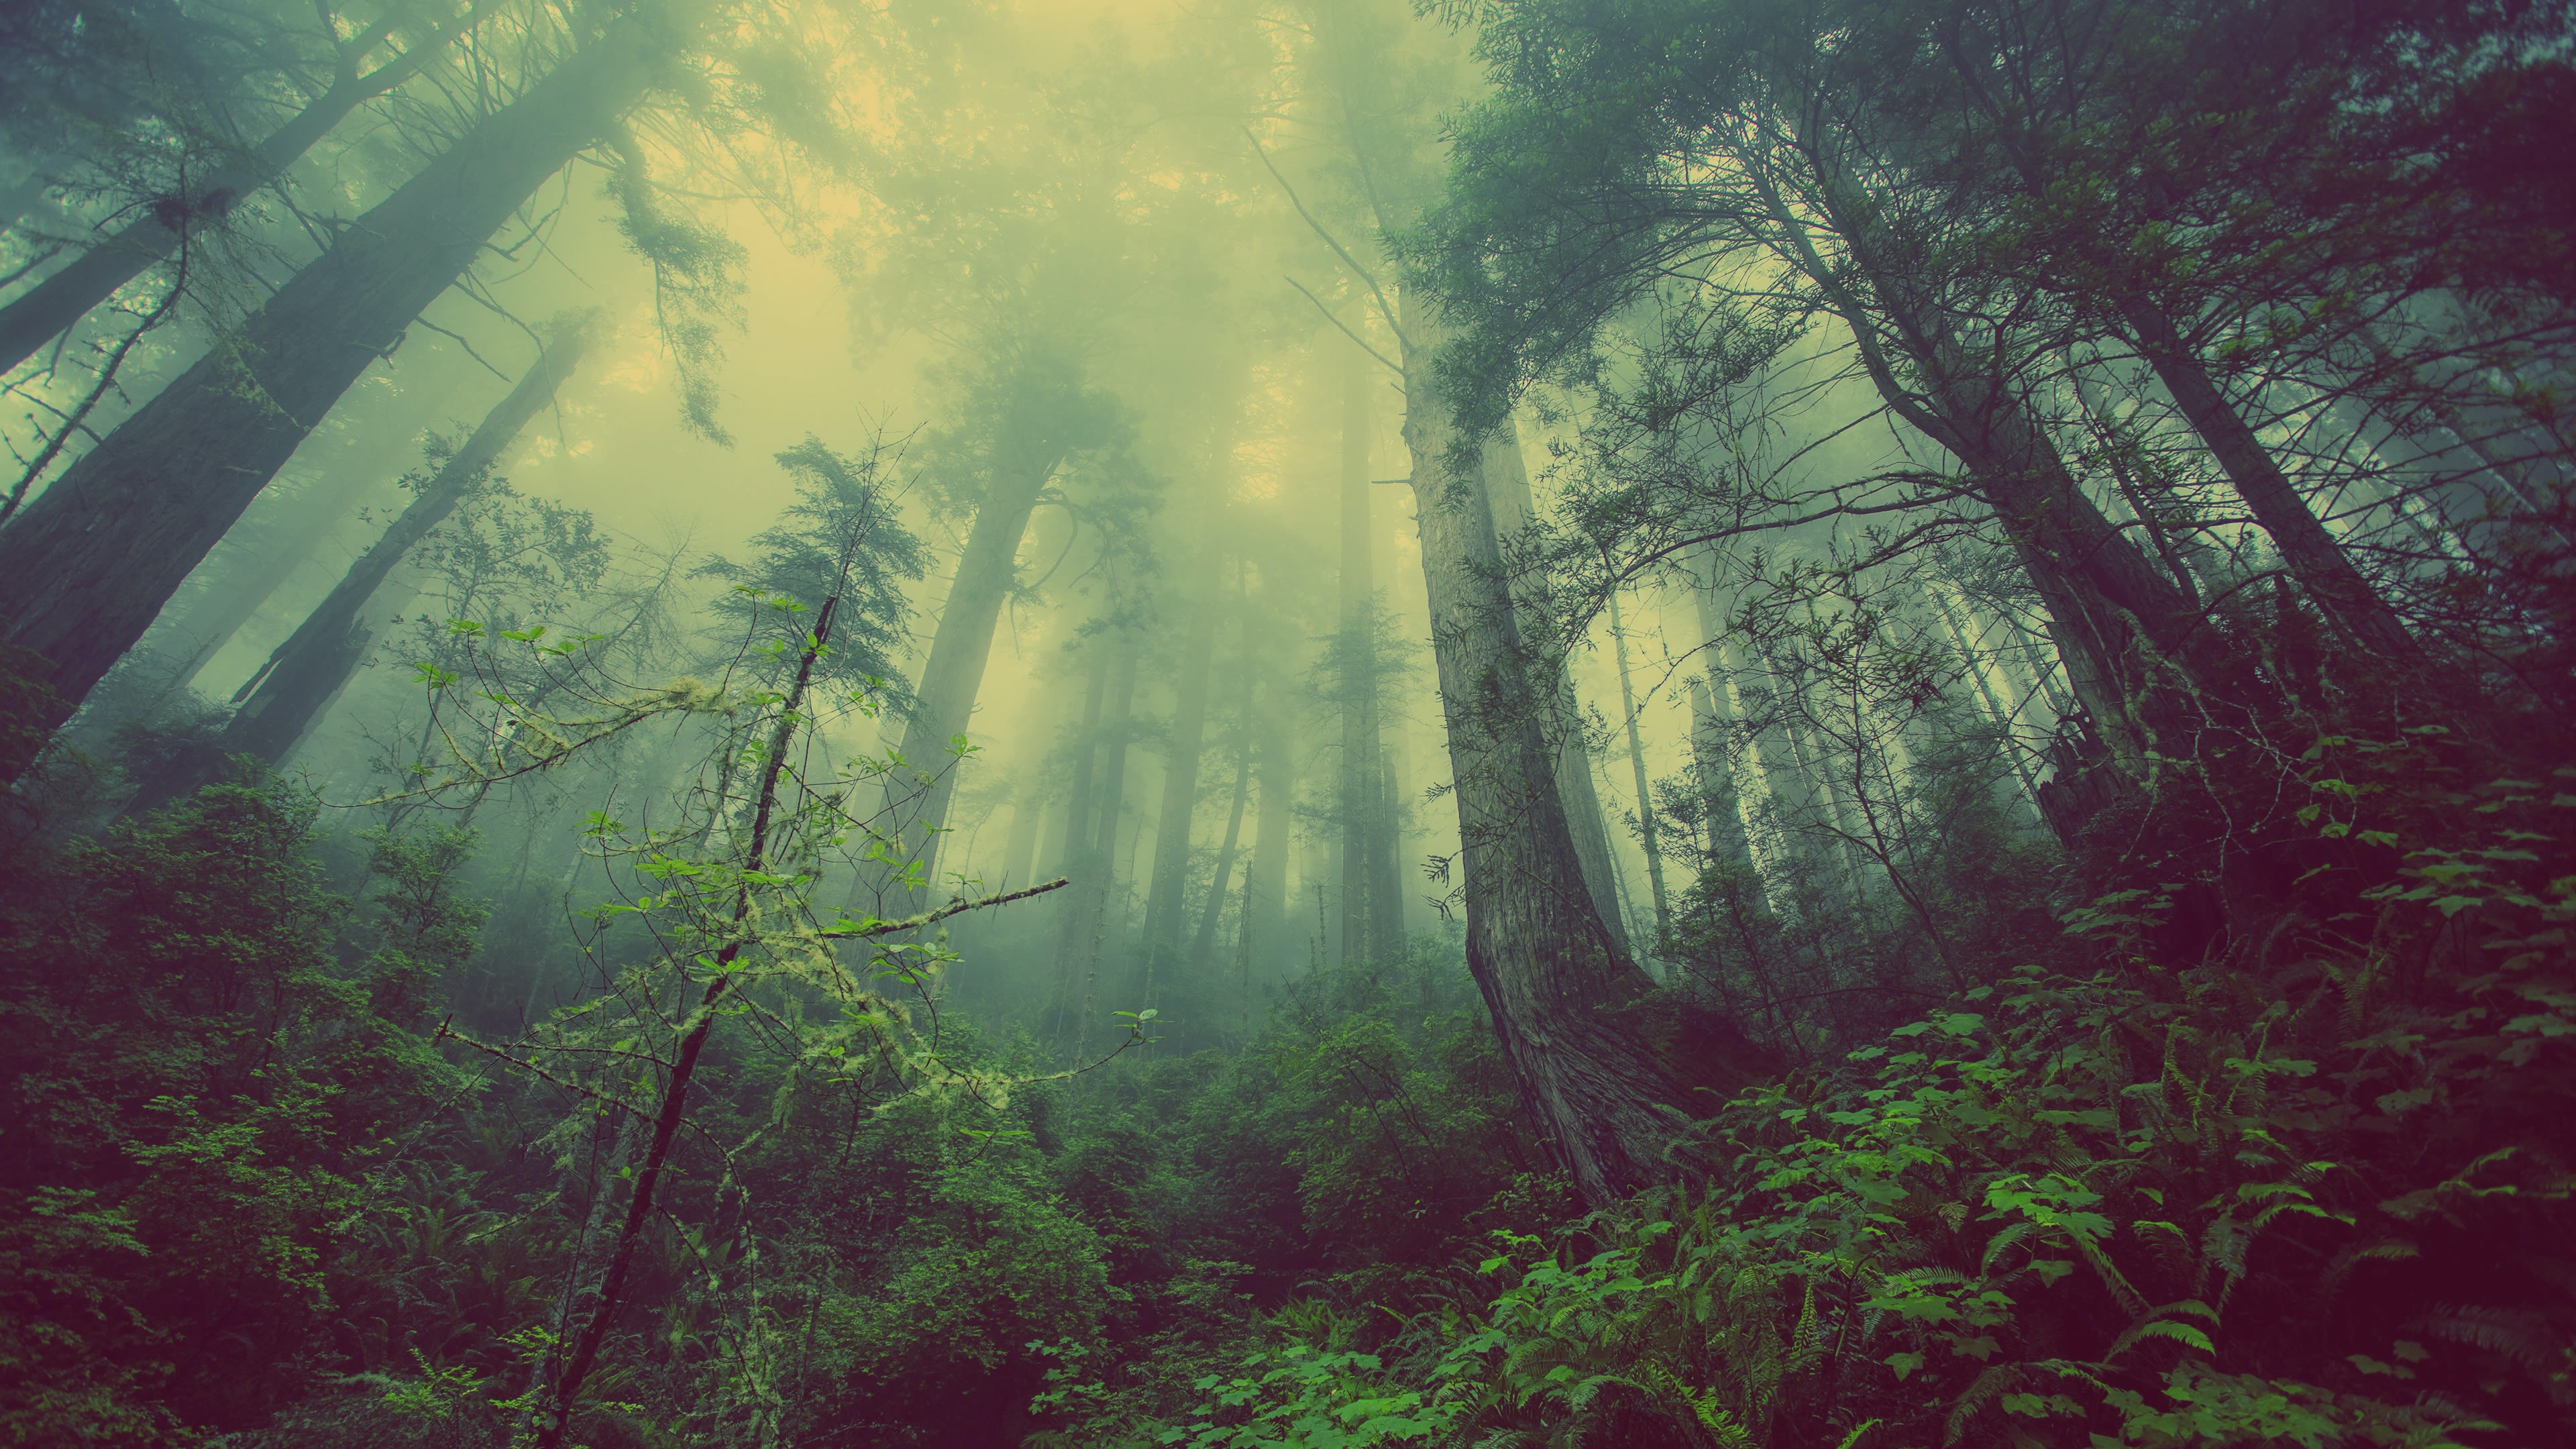 A low-angle shot of a foggy forest